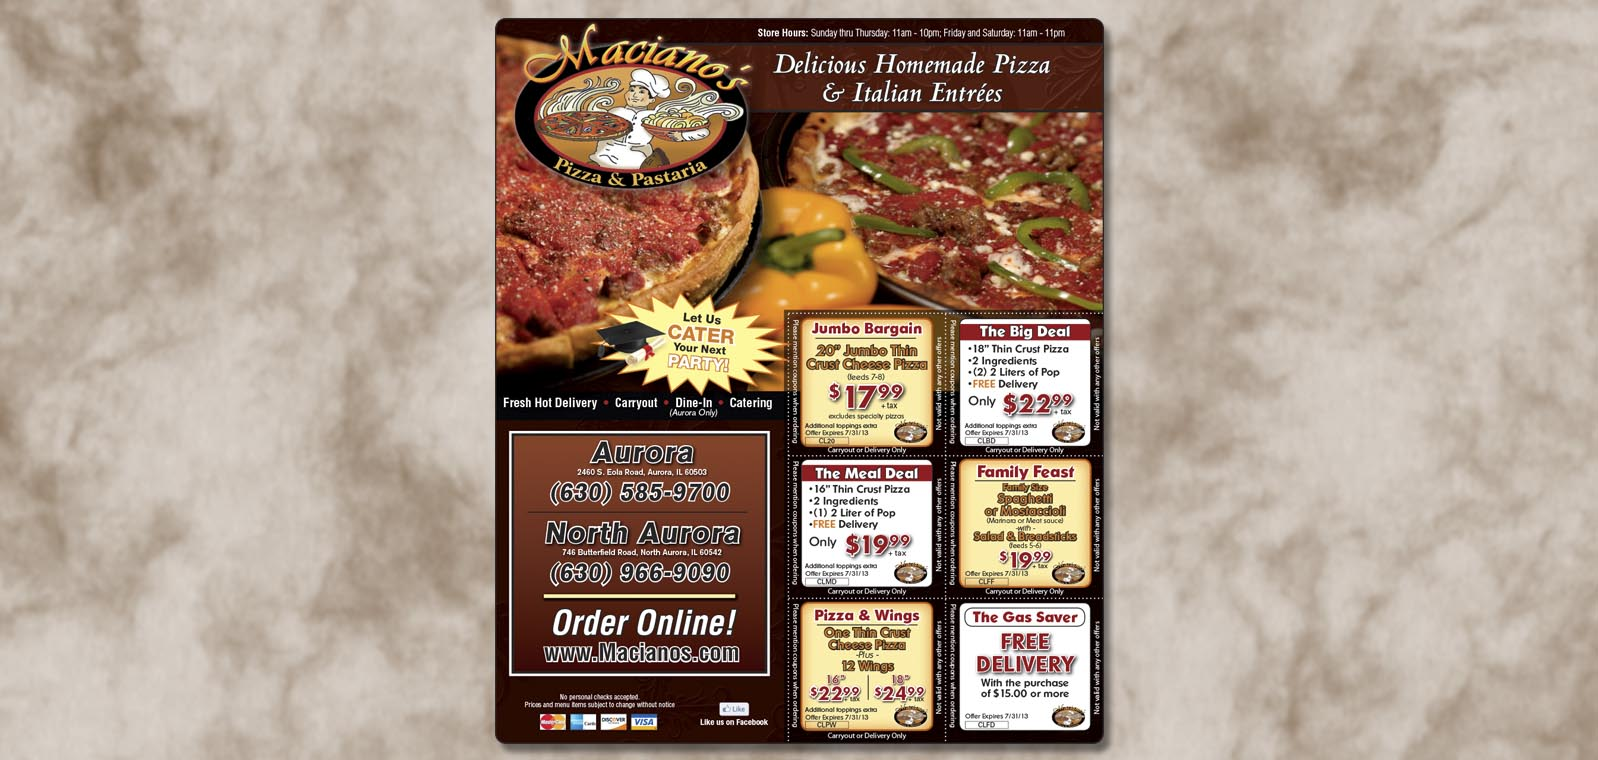 Publication Ad Graphic Design for Maciano's Pizza and Pastaria, by Roselle Graphic Designer Controlled Color, Inc.